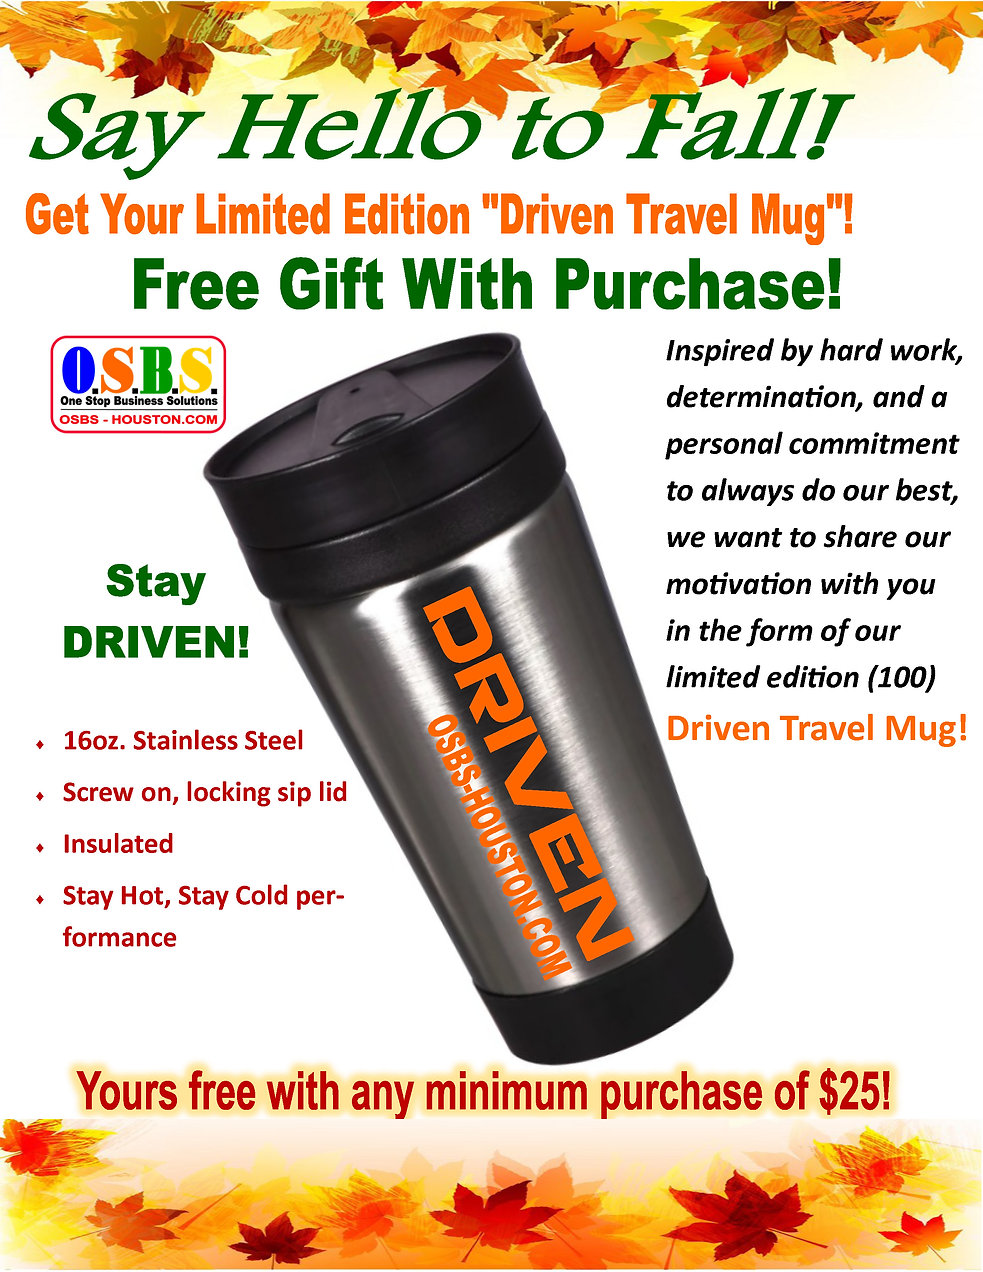 DRIVEN GIFT WITH PURCHASE TRAVEL MUG PRO